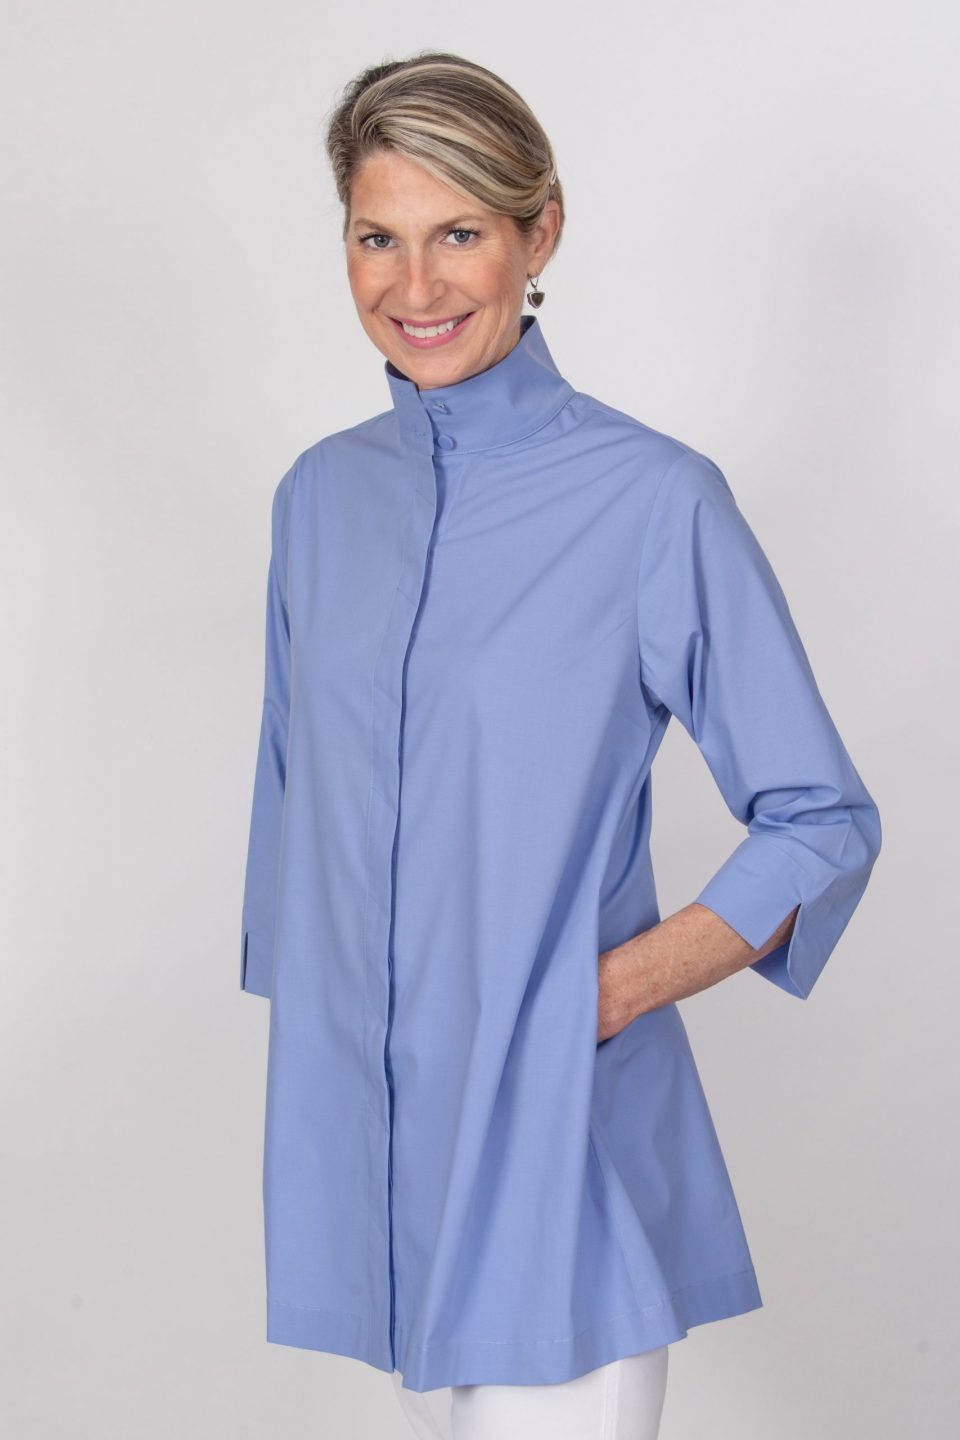 Zipper Back Tunic Top Periwinkle Front- Diane Bailey Designs